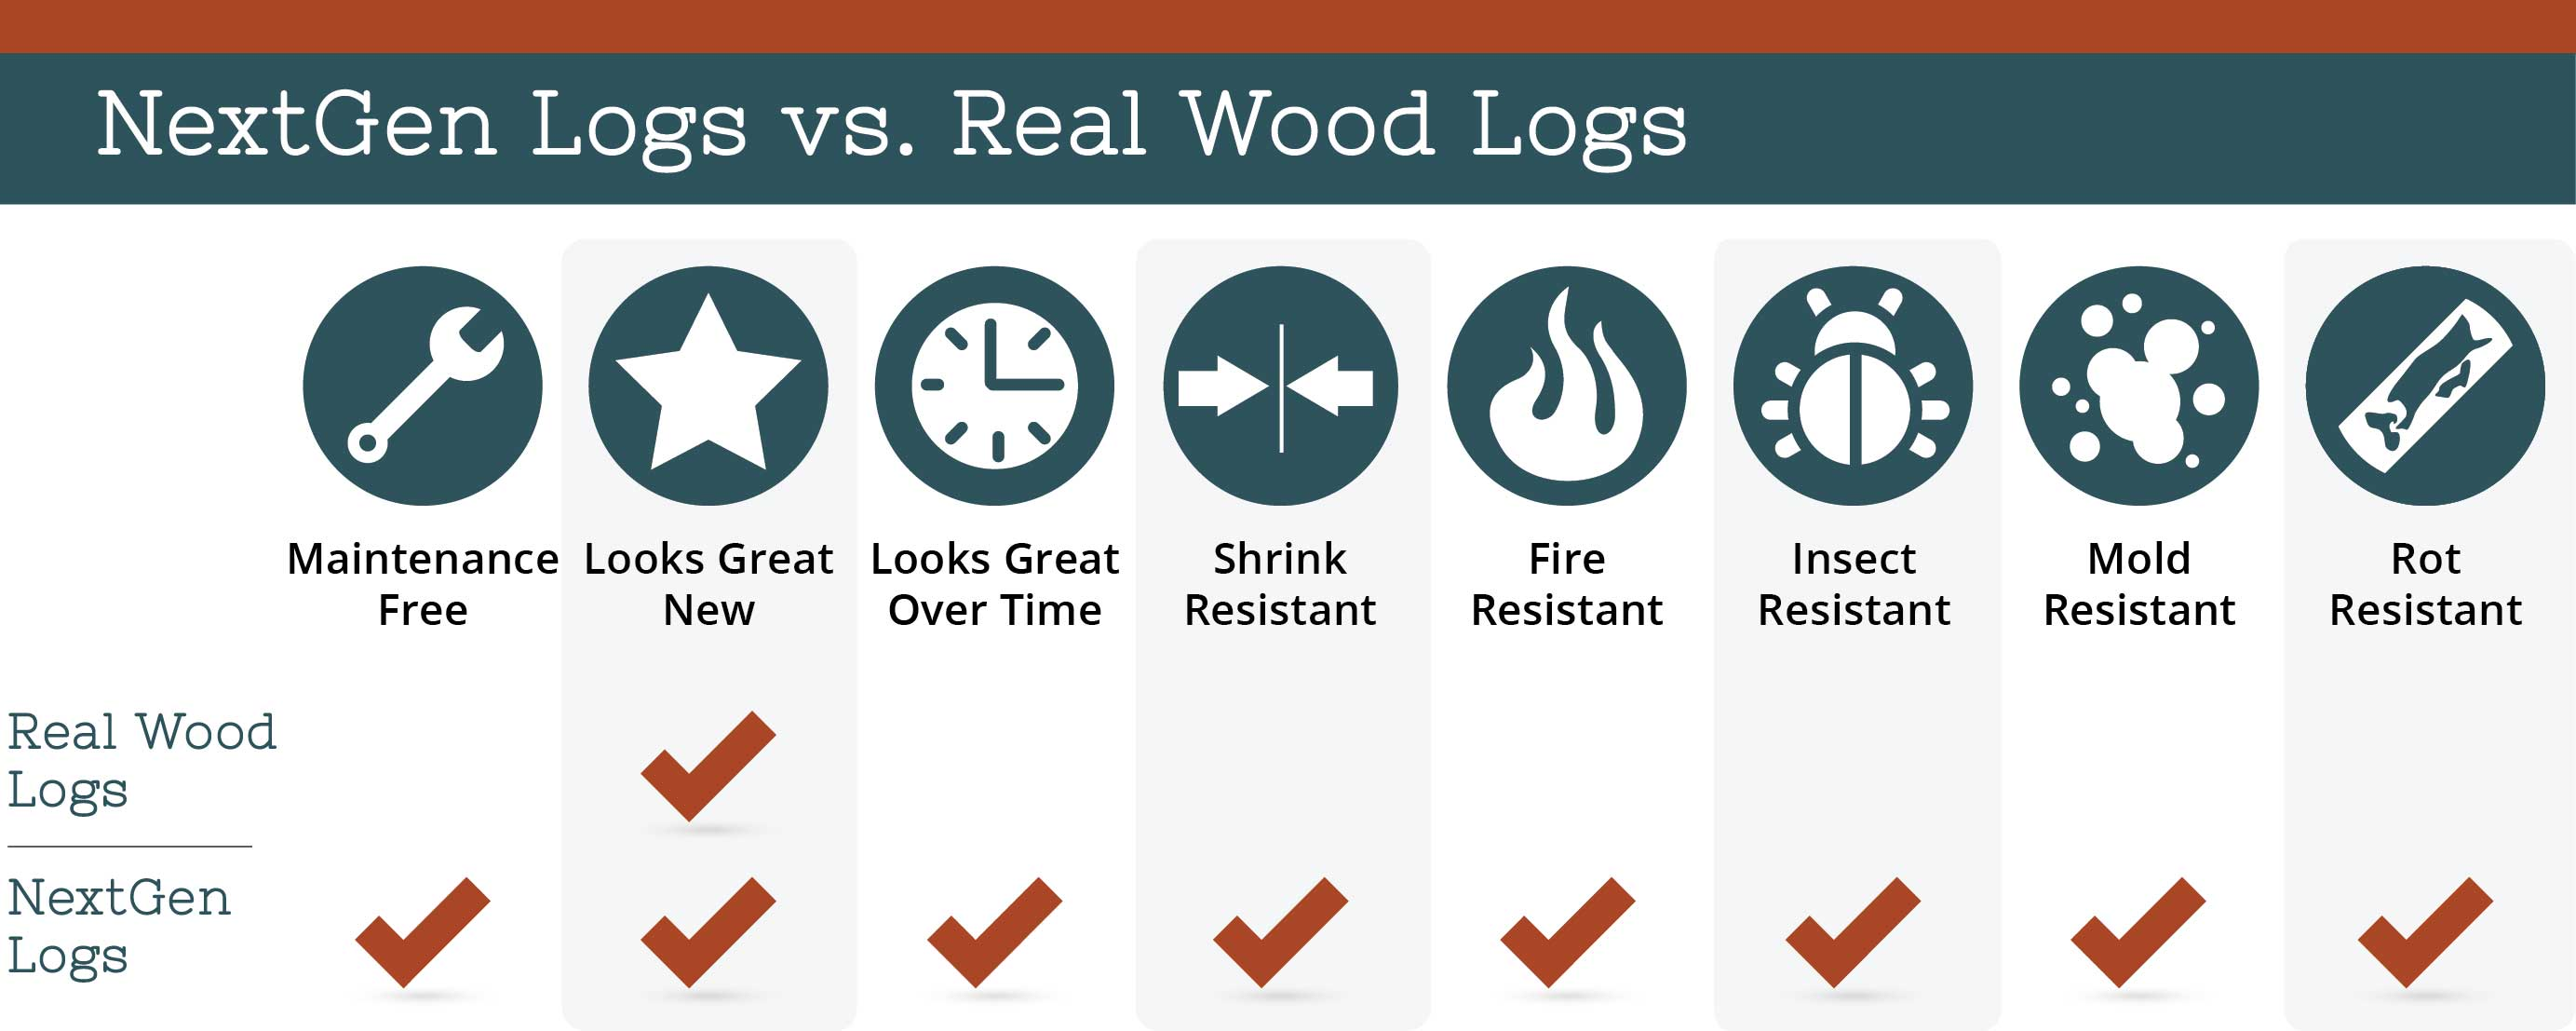 nextgen_logs_concrete_log_siding_nextgen_logs_vs_real_wood_logs_chart